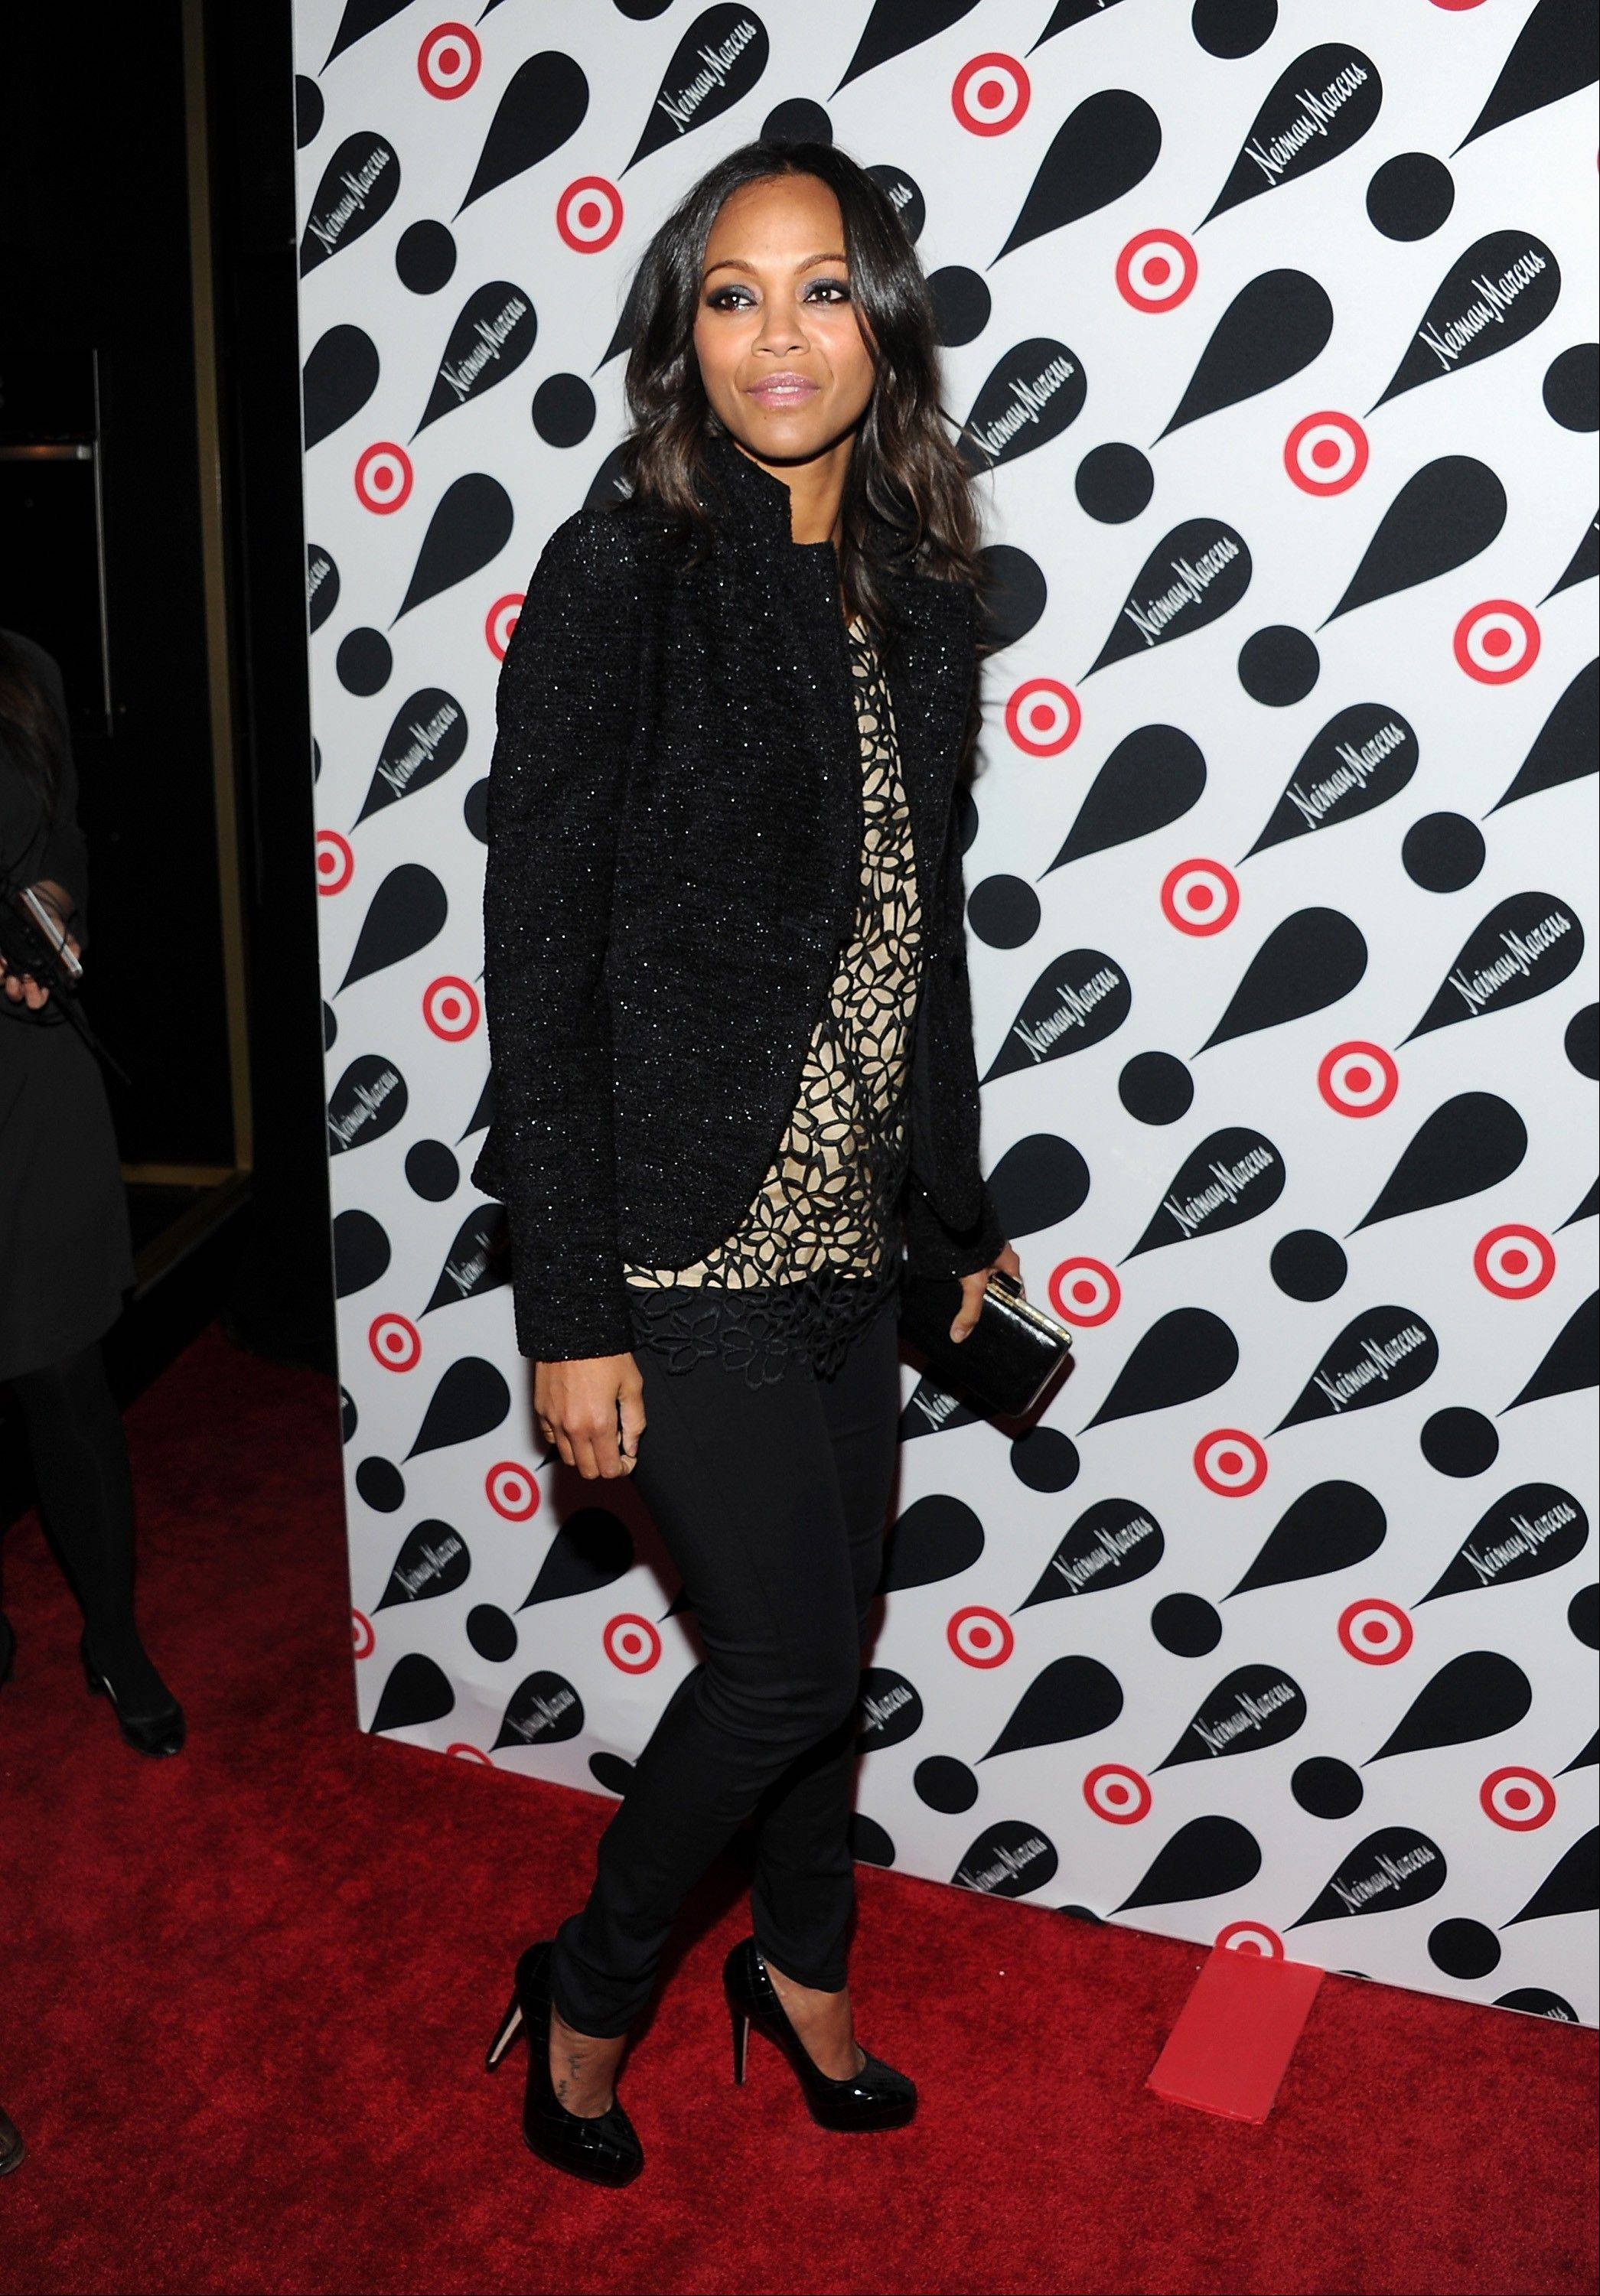 Actress Zoe Saldana attends the Target and Neiman Marcus holiday collection launch in New York.